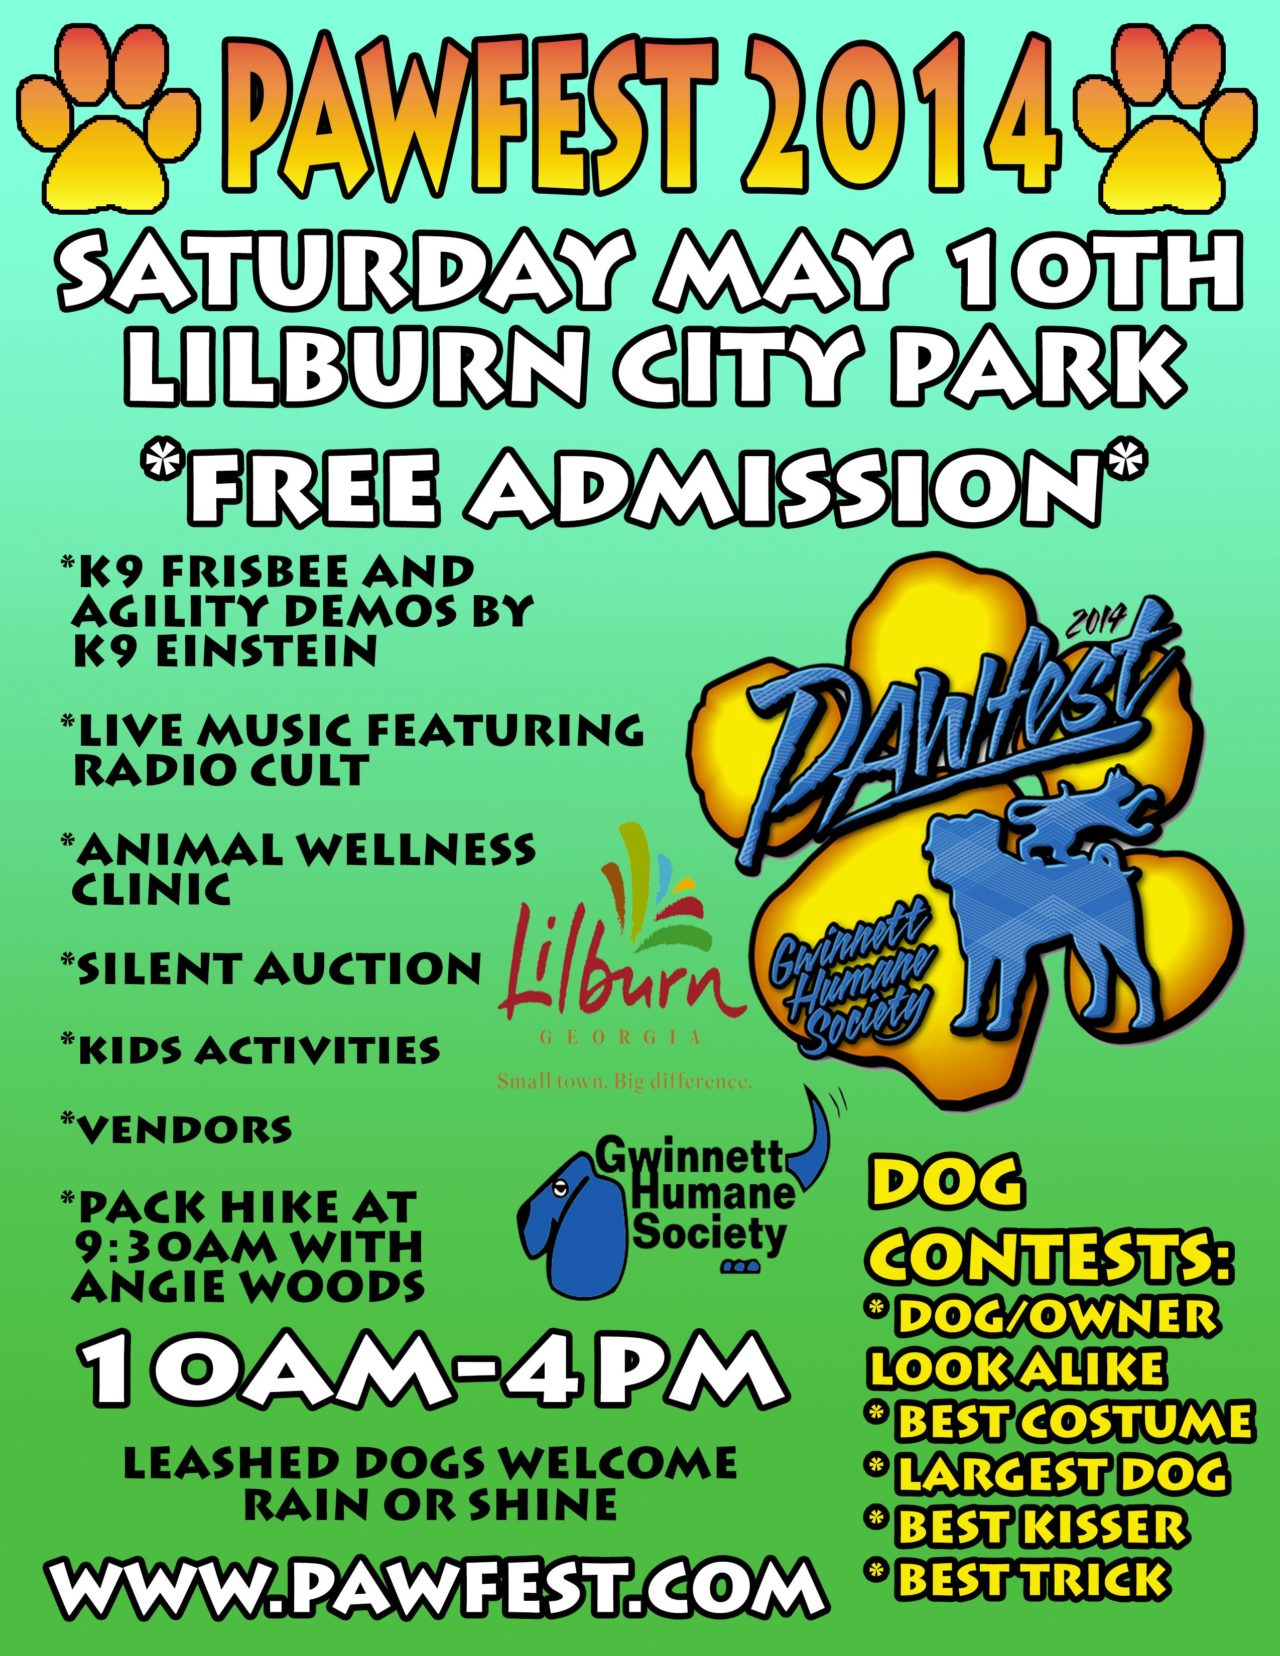 Jon us at Pawfest 2014 at lilburn park MAy 10 10-4 and help support the Humane Society